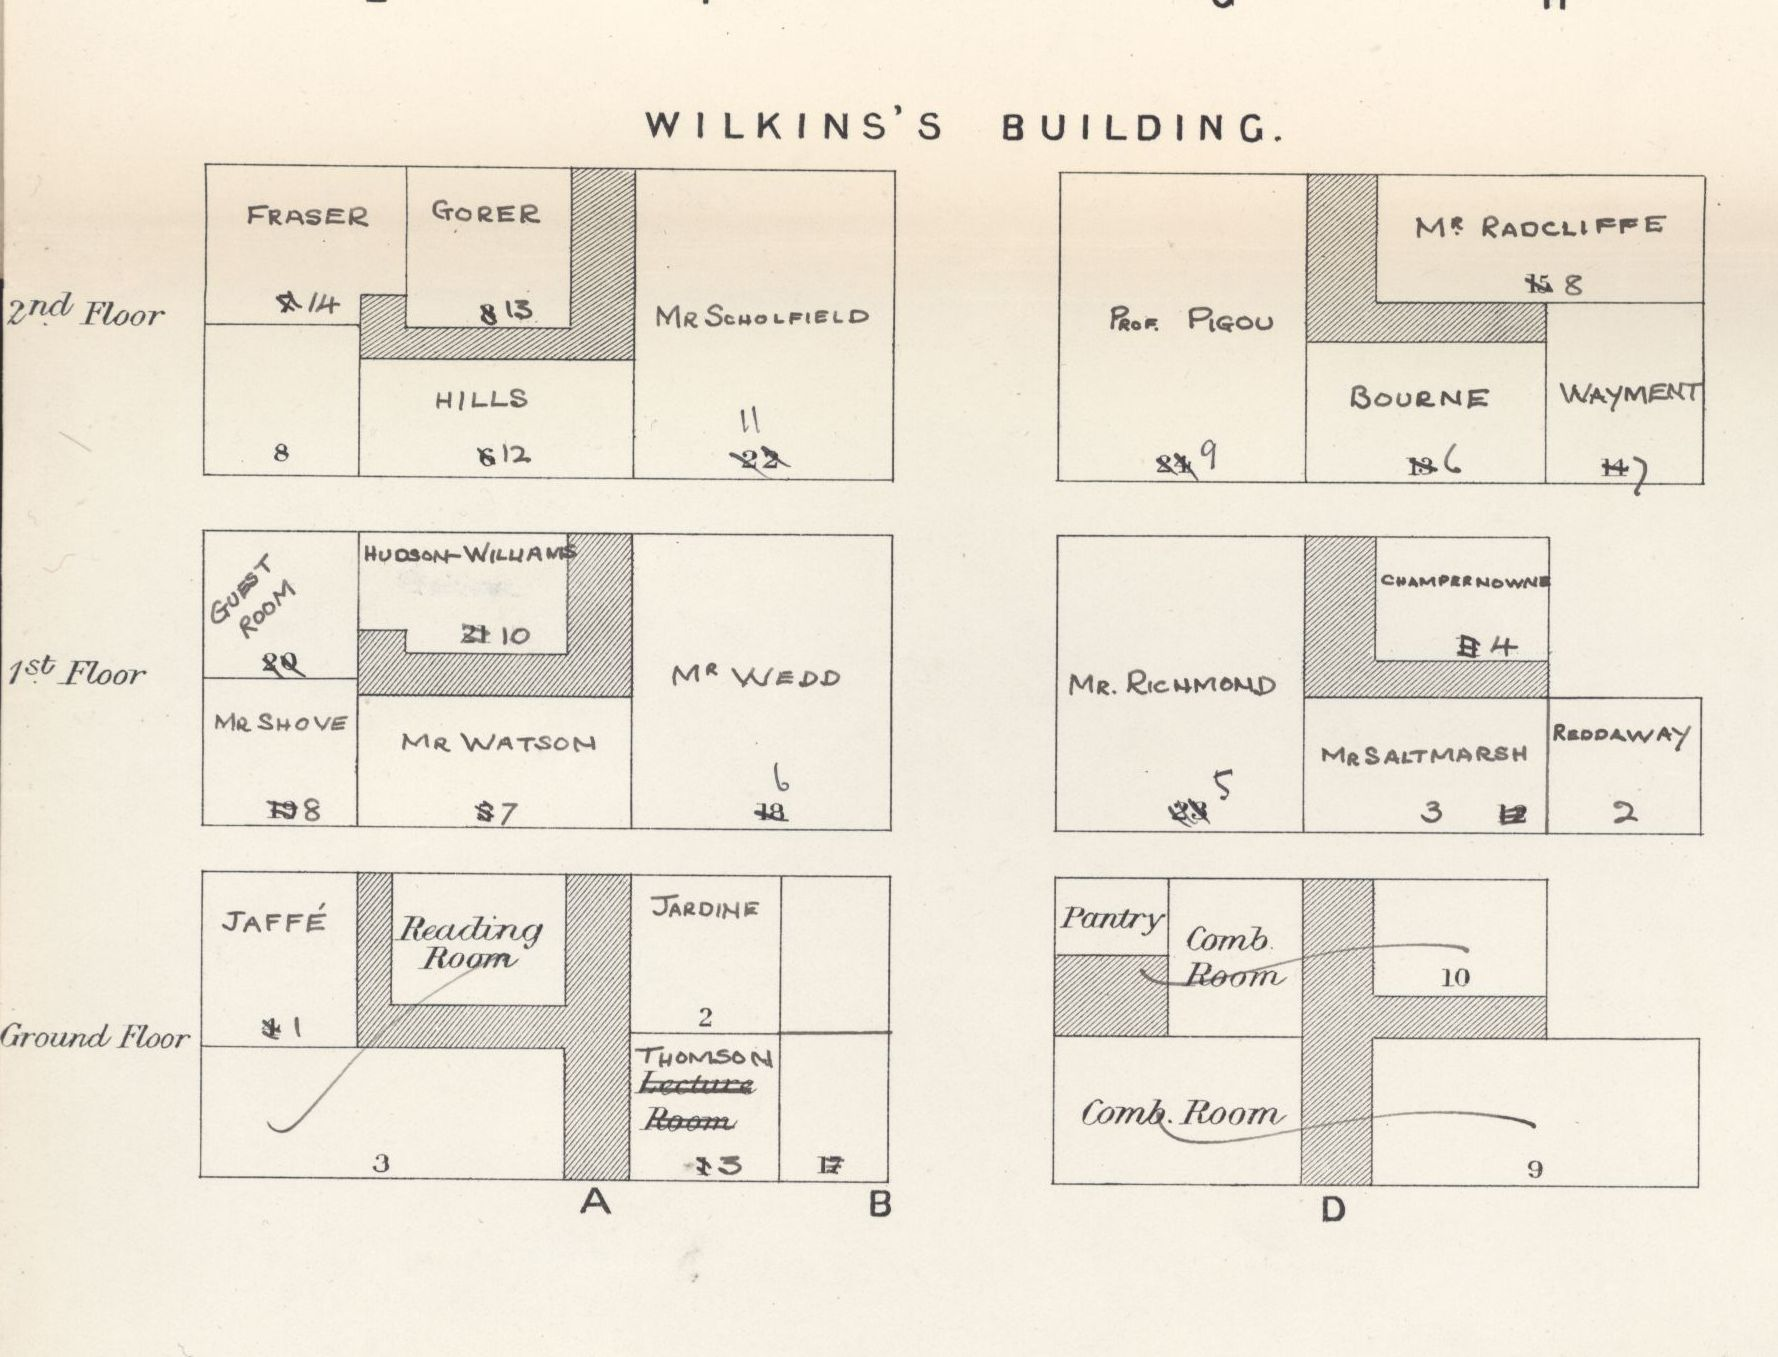 Extract from the 1933 room rent diagram